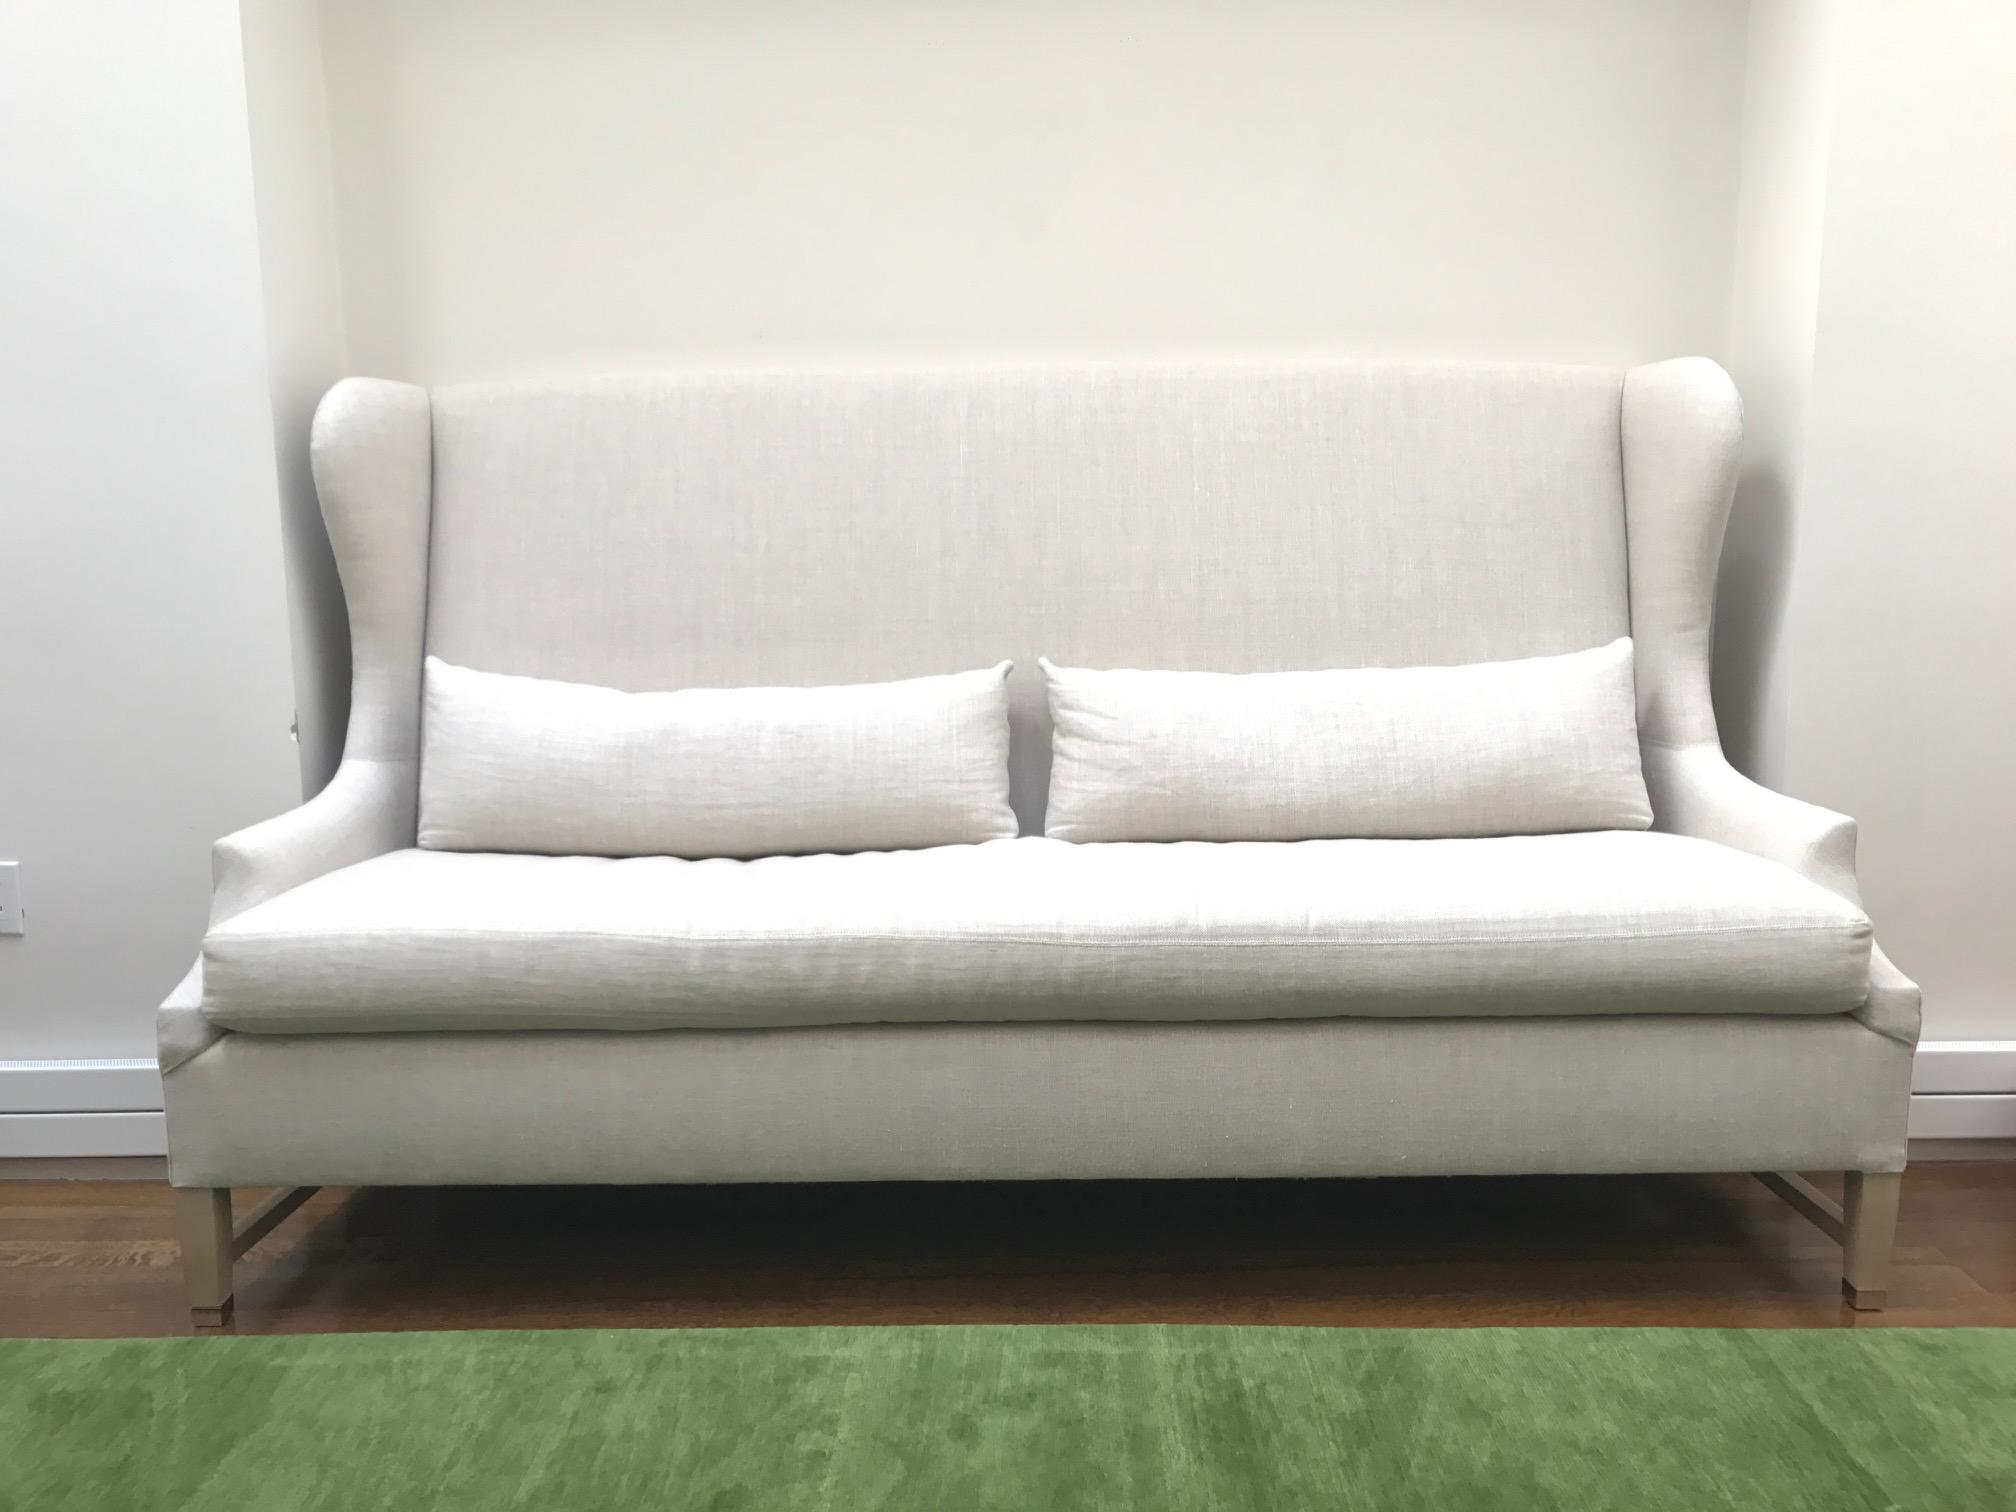 belgian linen sofa vintage chesterfield sleeper verellen high back belgium chairish i bought this from to use in my dining room had intended